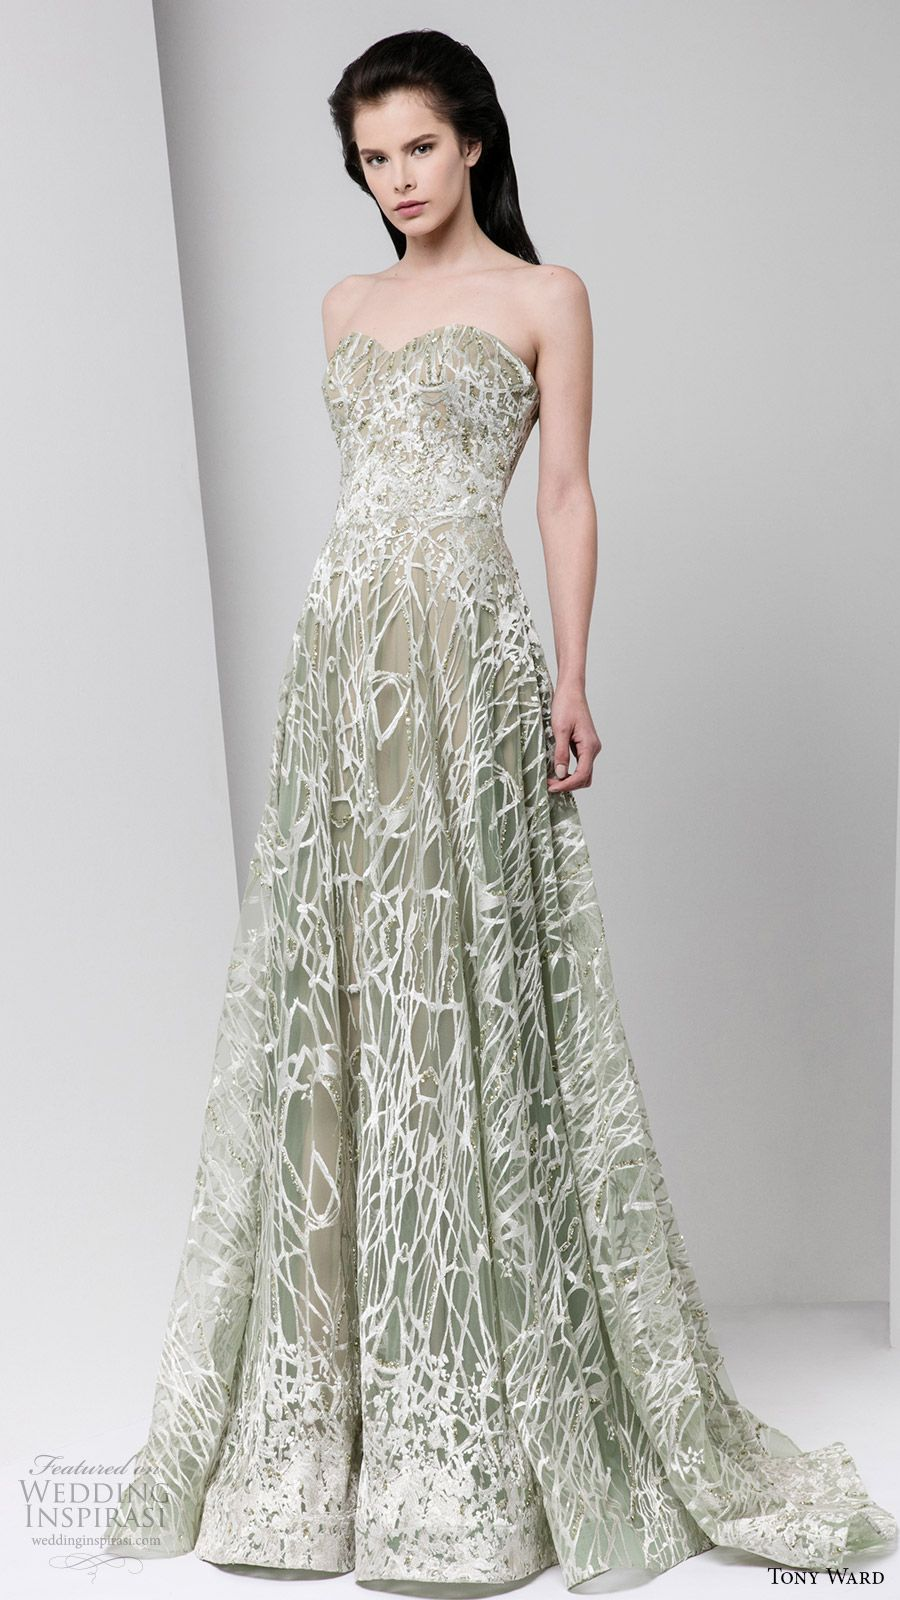 Tony Ward Fall 2016 Ready-to-Wear Dresses | Fall winter, Gowns and ...